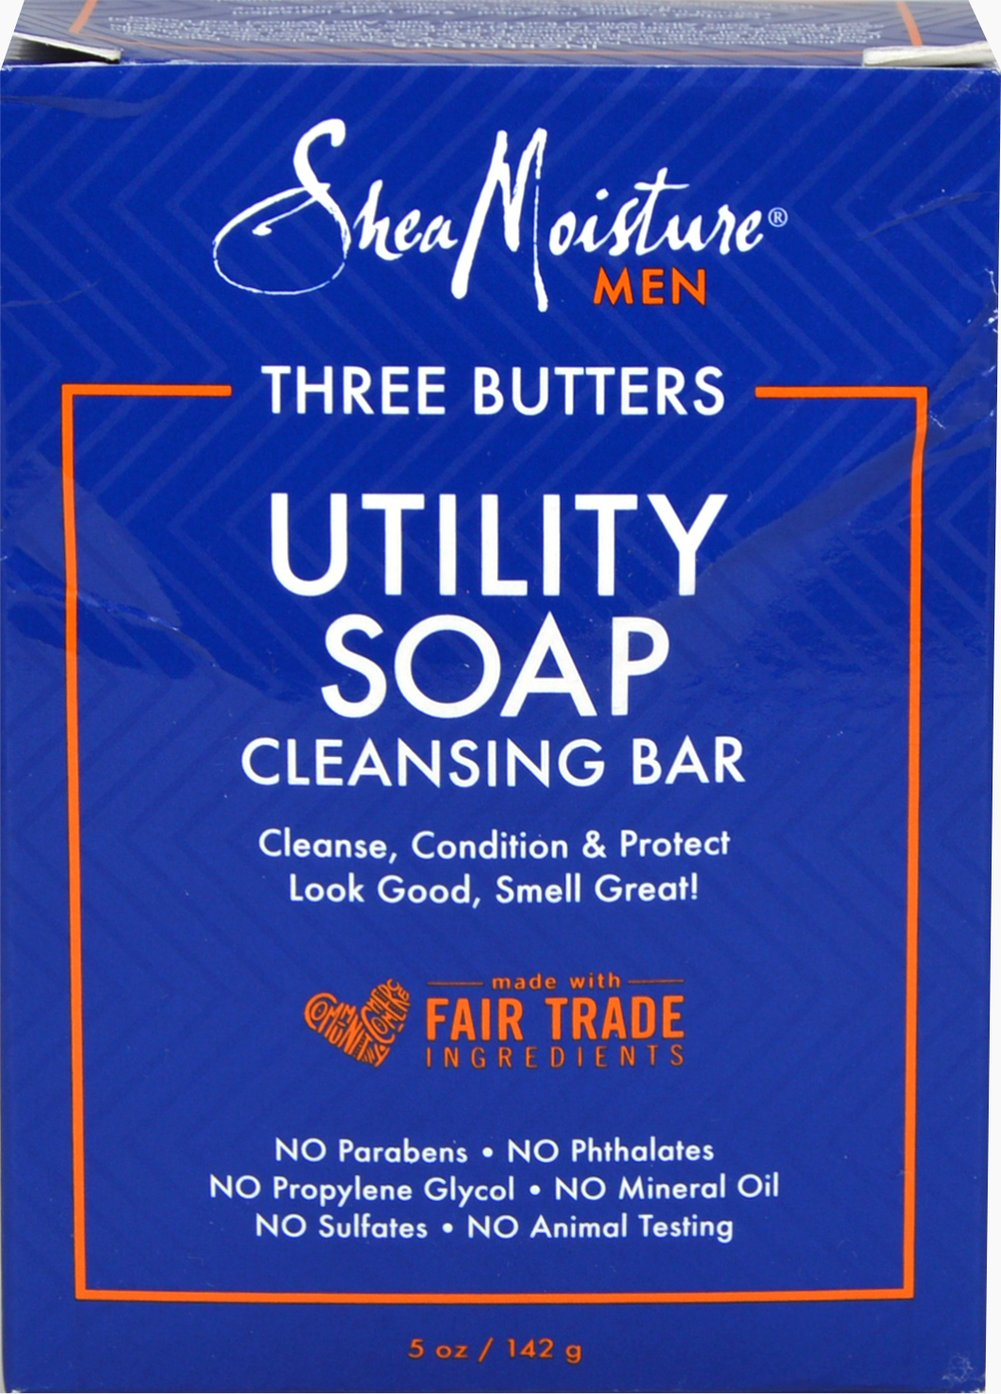 Three Butters Utility Cleansing Bar